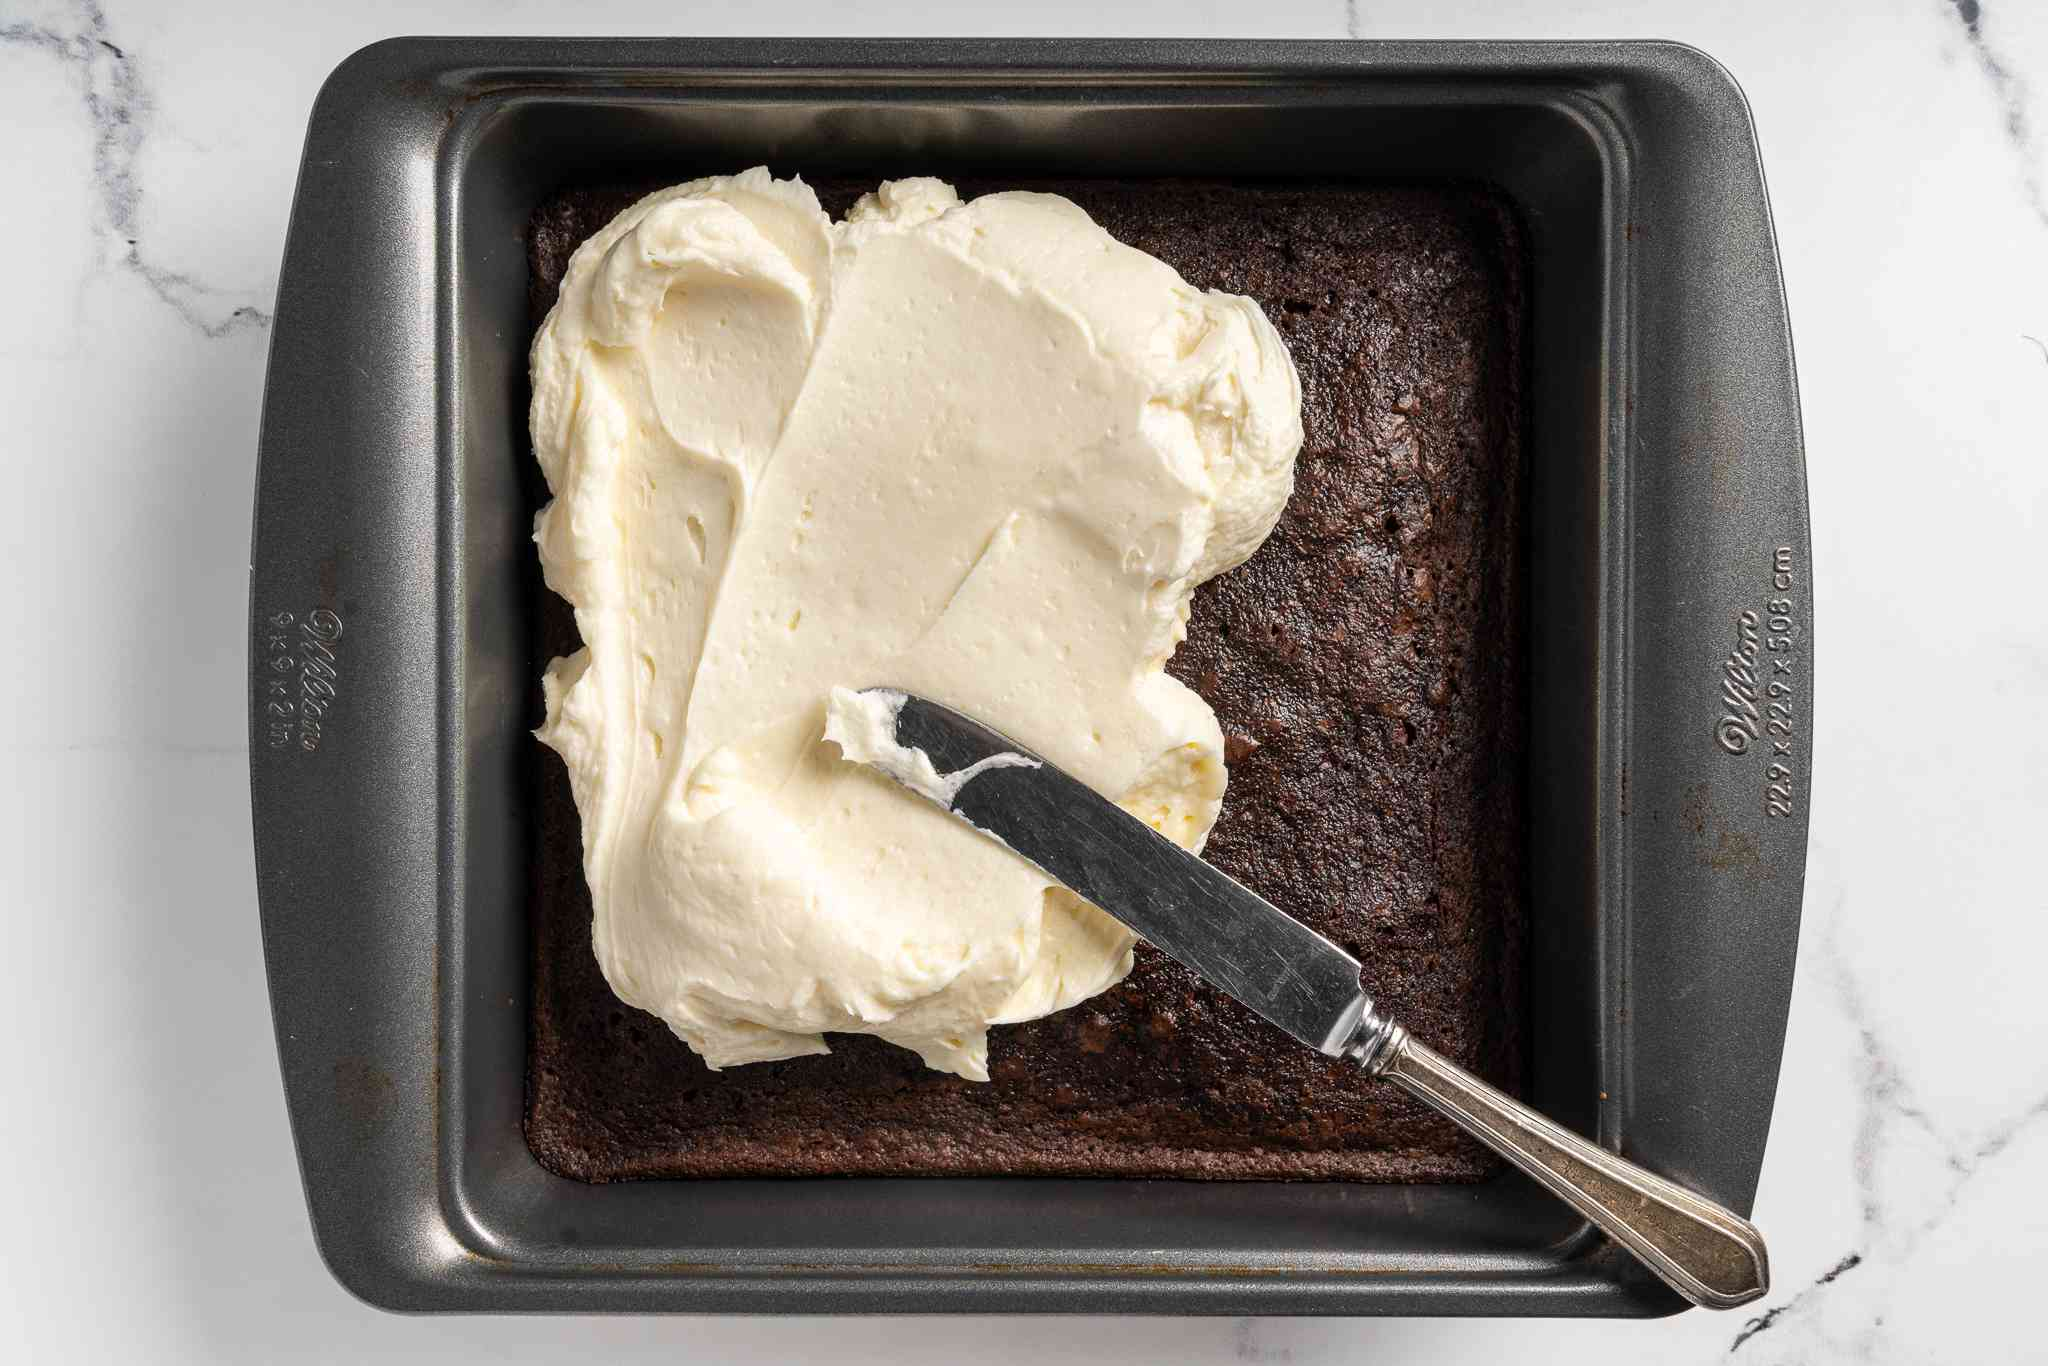 icing spread on top of the brownies in the baking pan